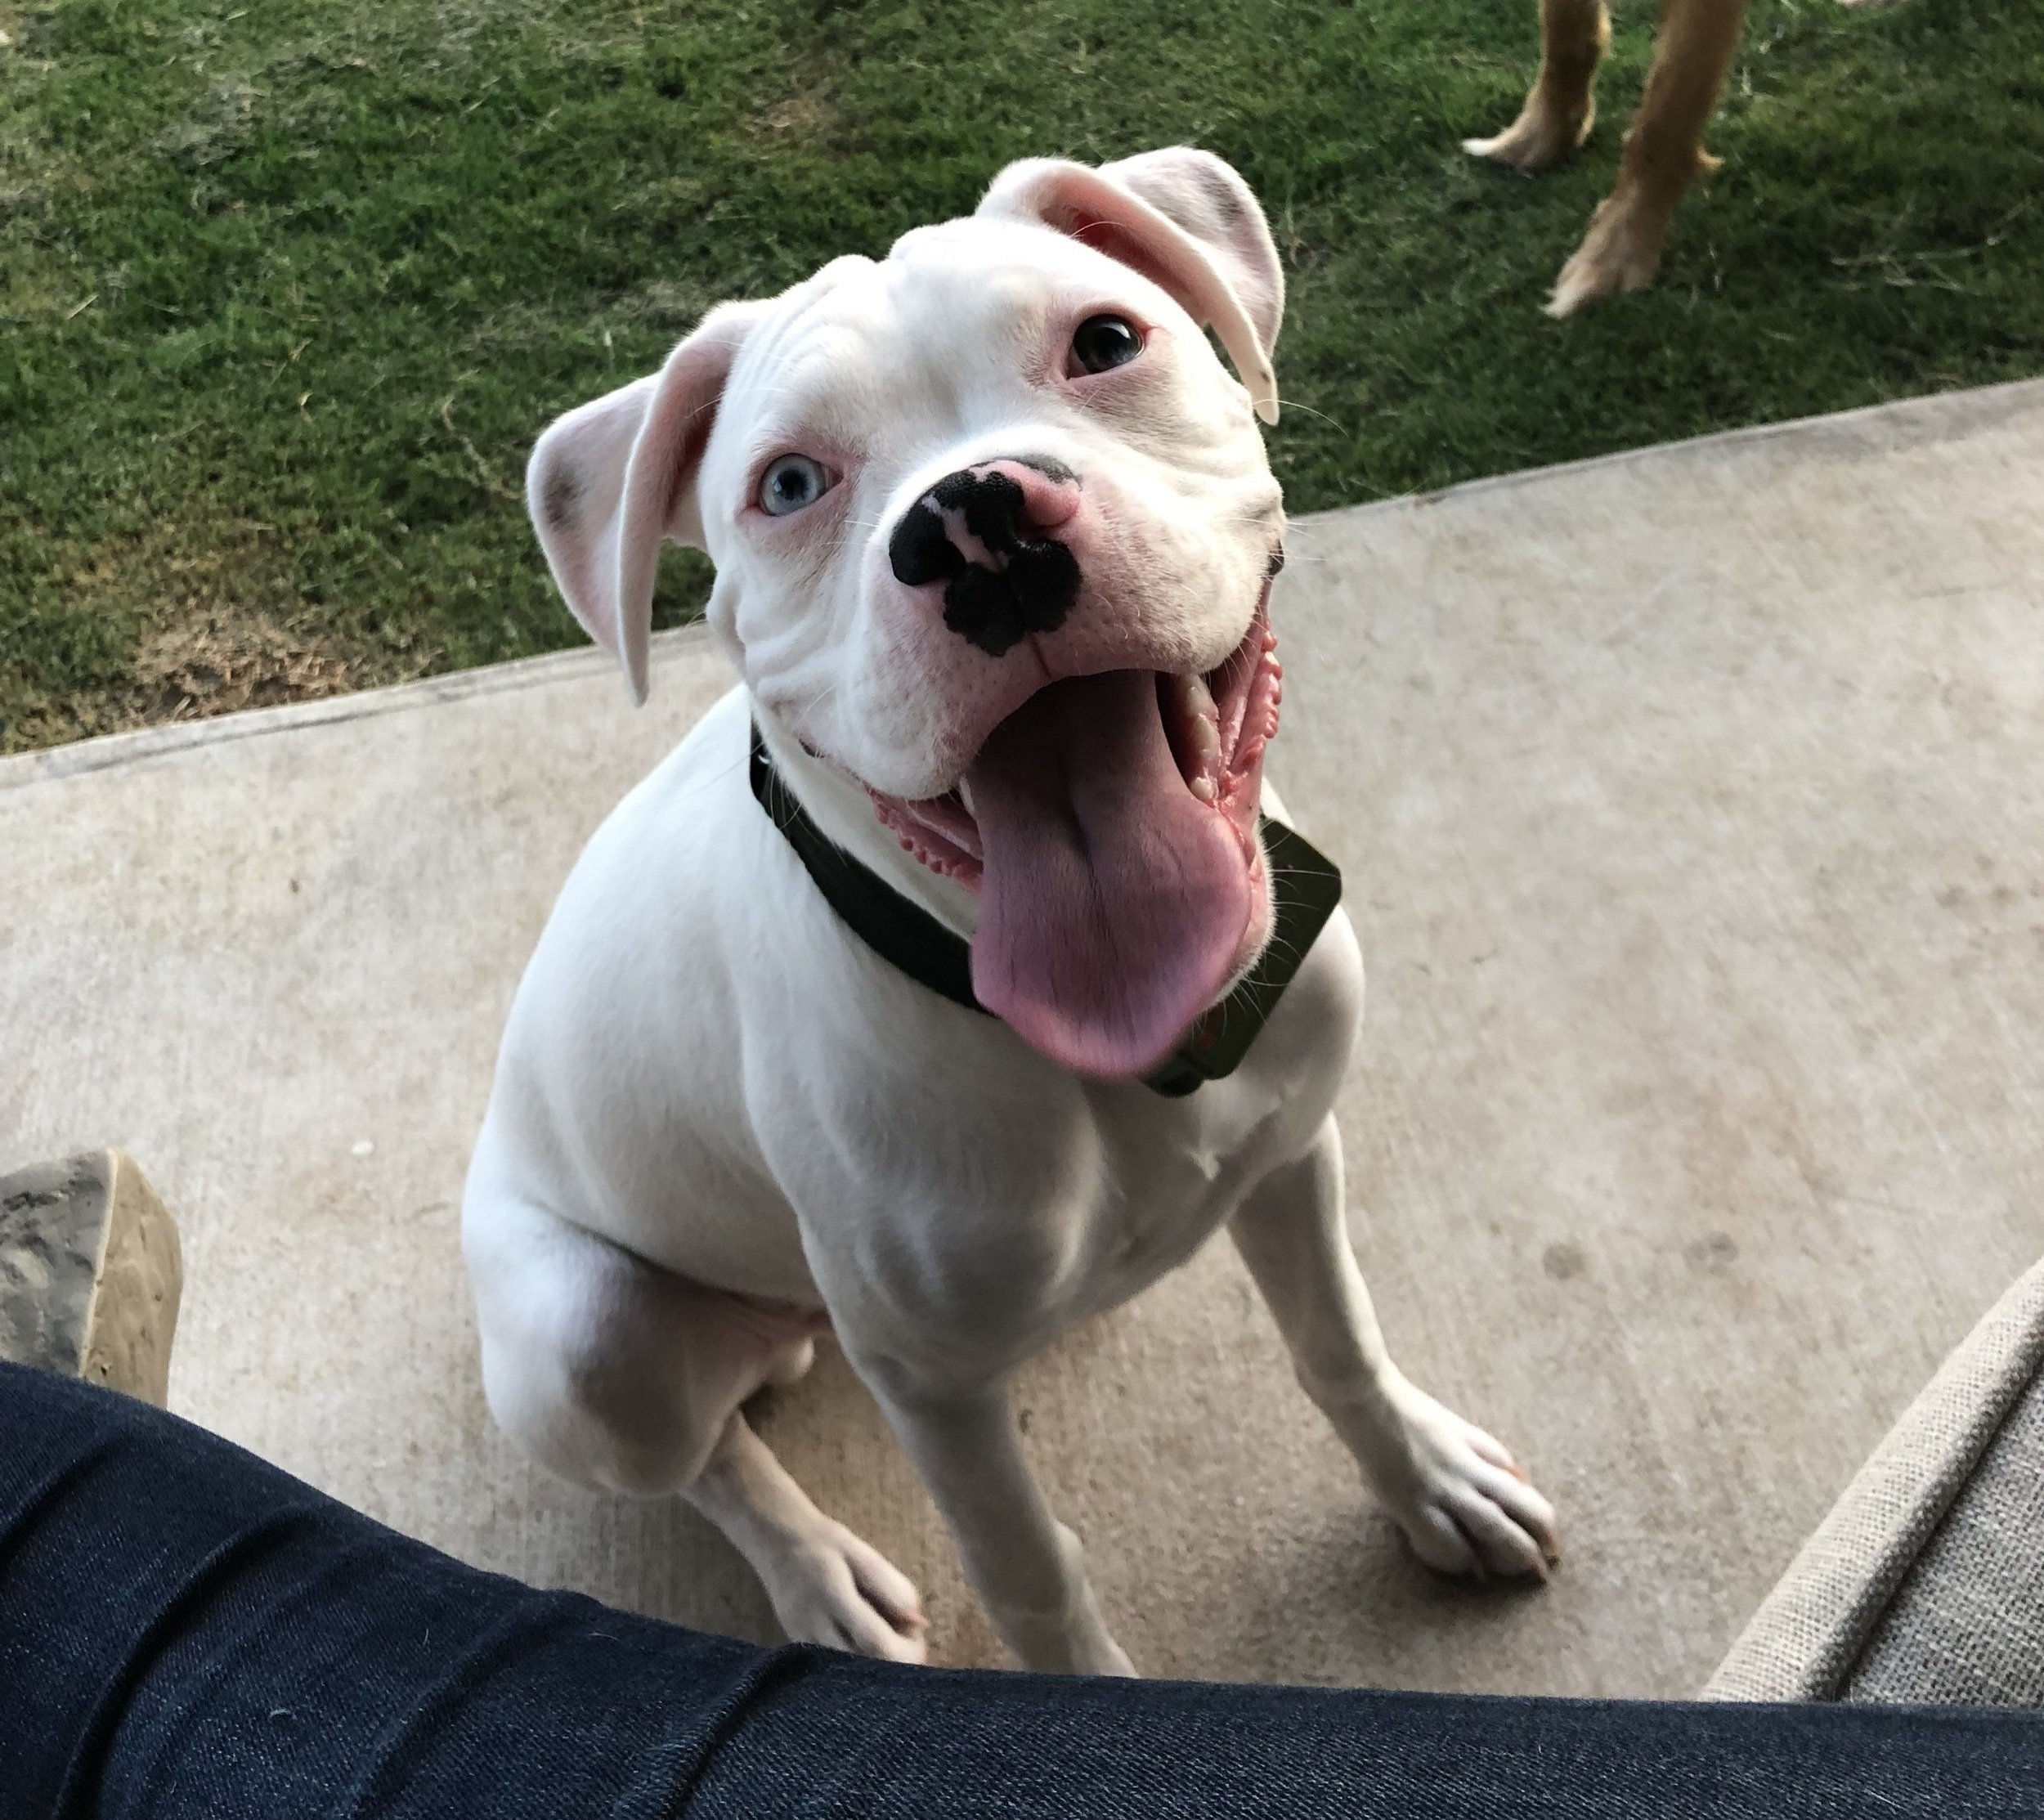 Castiel, or Cas as we call him, is Harvey's little brother. He is deaf, but he doesn't seem to notice, and we can certainly hear him! He barks and squeals at his toys, but looks at us funny when we dance to music. He's a sweetheart.